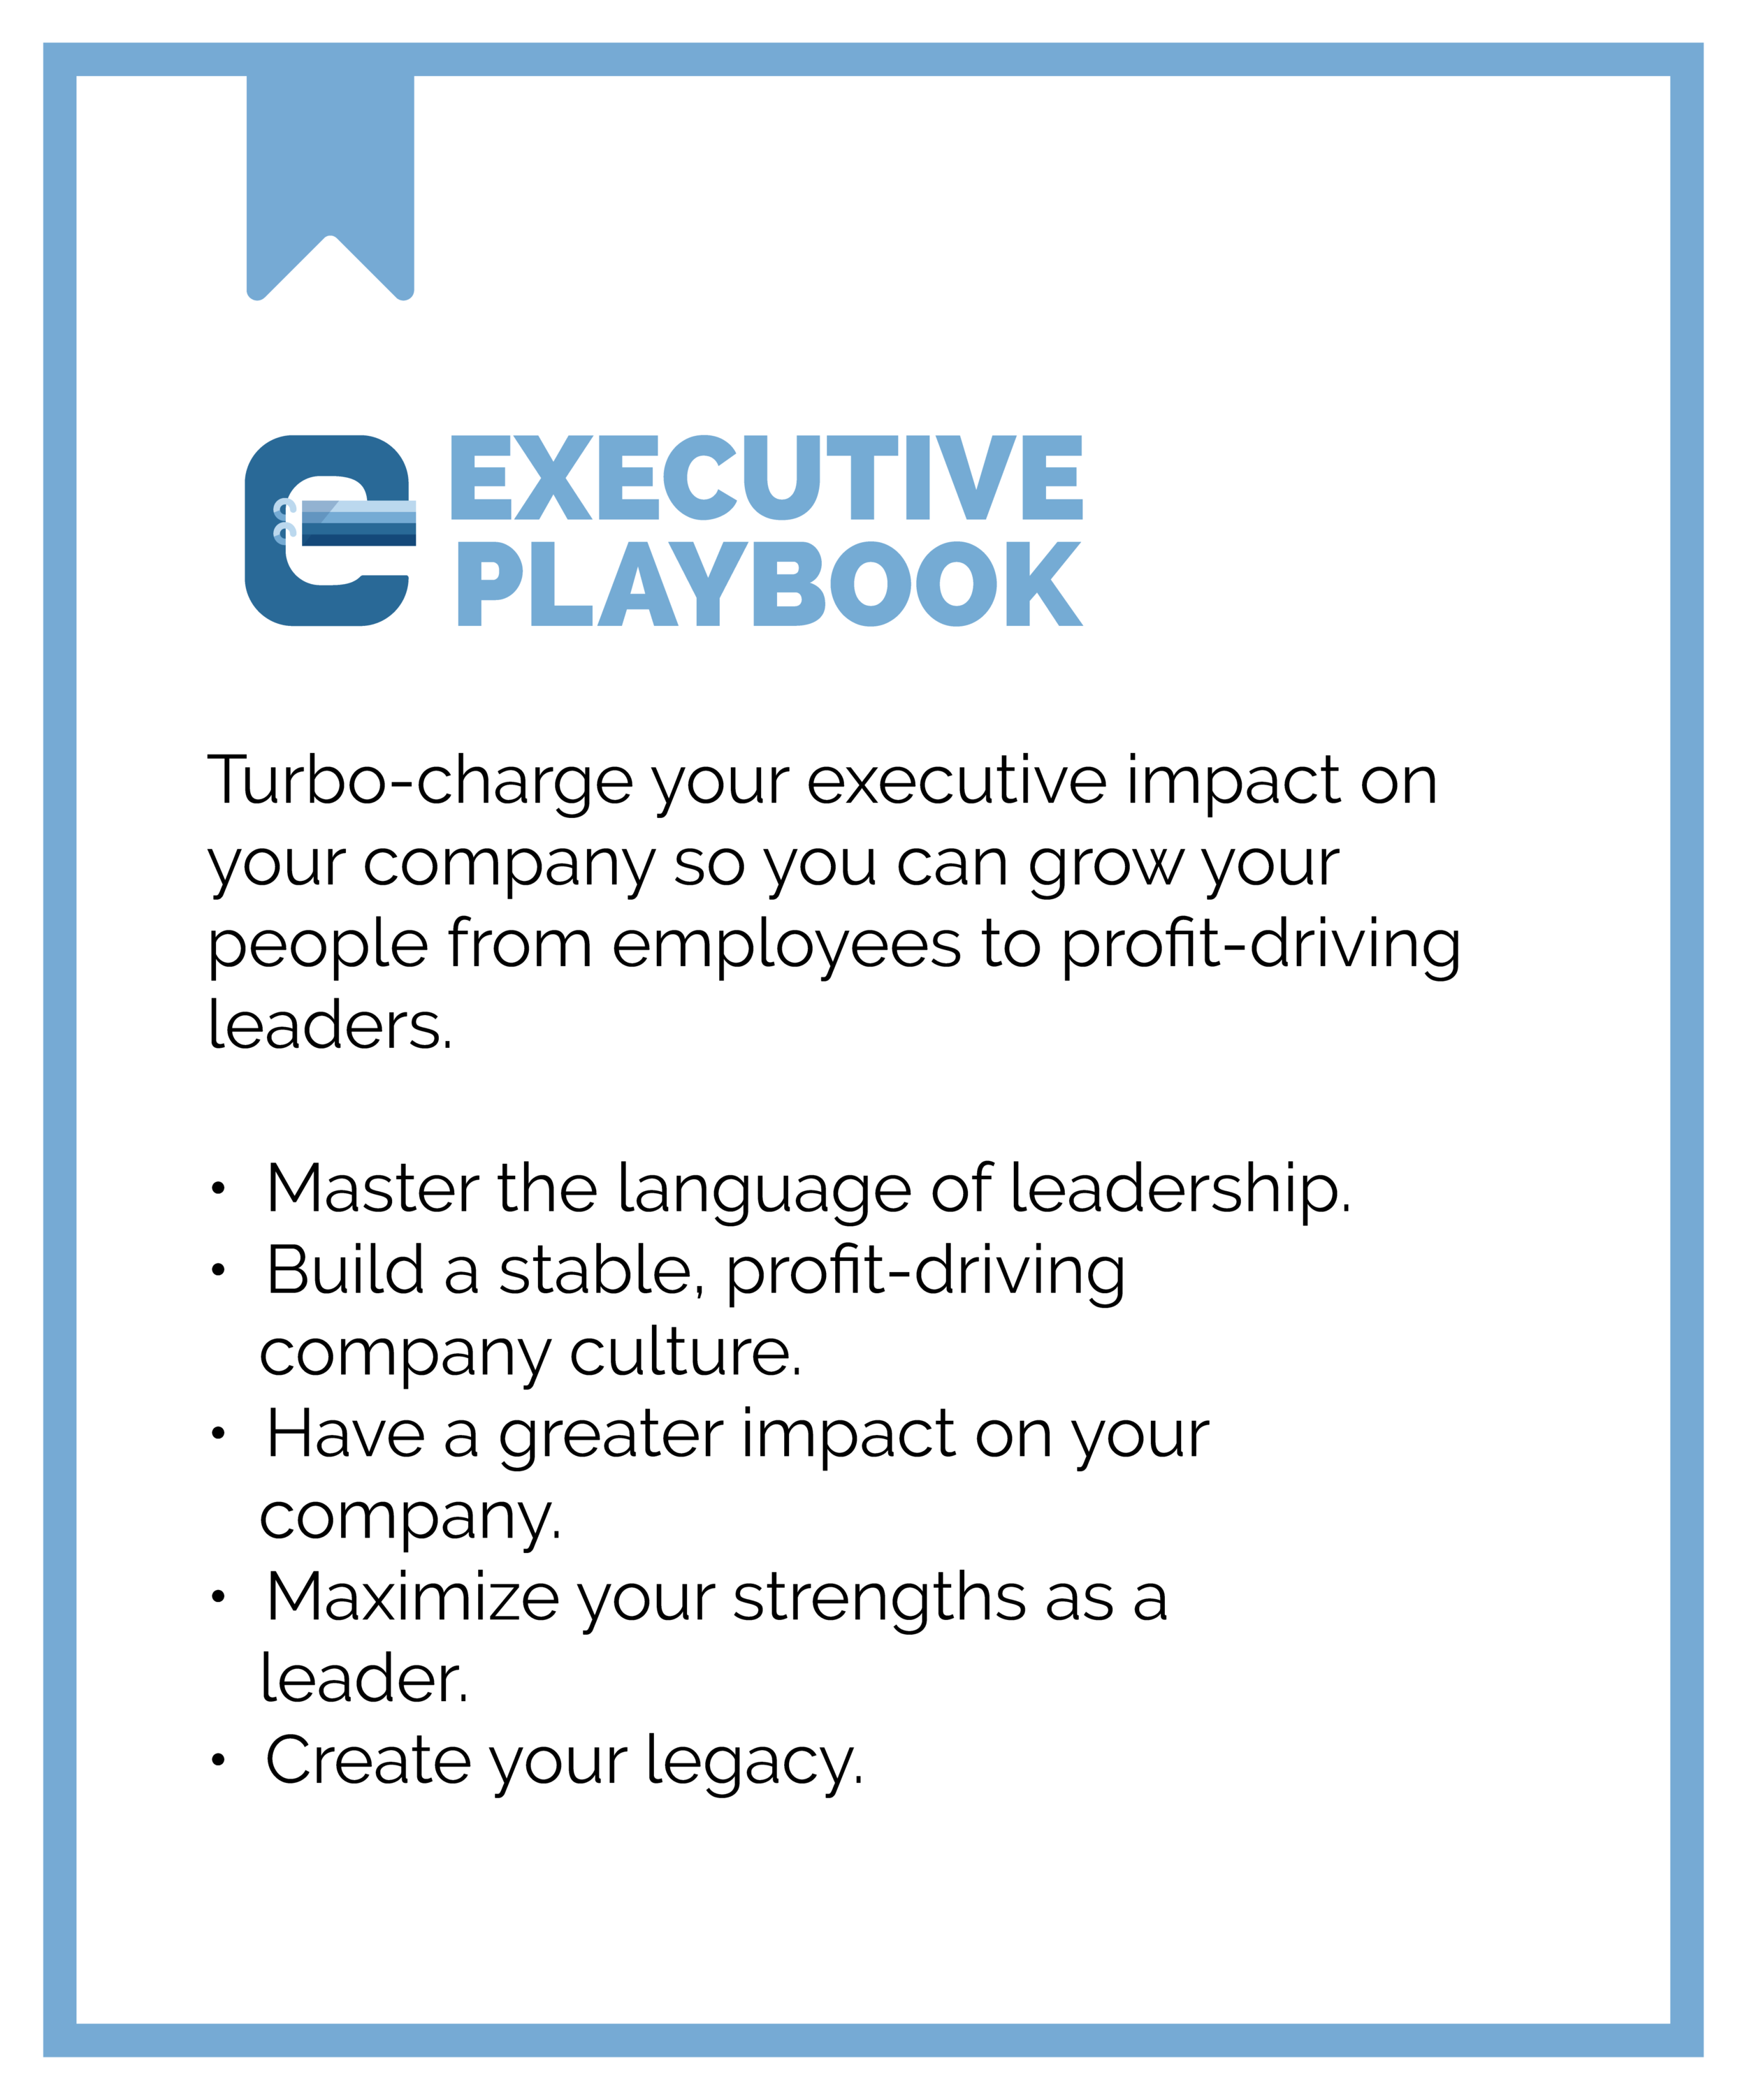 FPG Executive Playbook. Turbo-charge your executive impact on your company so you can grow your people from employees to profit-driving leaders. Master the language of leadership. Build a stable, profit-driving company culture. Have a greater impact on your company. Maximize your strengths as a leader. Create your legacy.